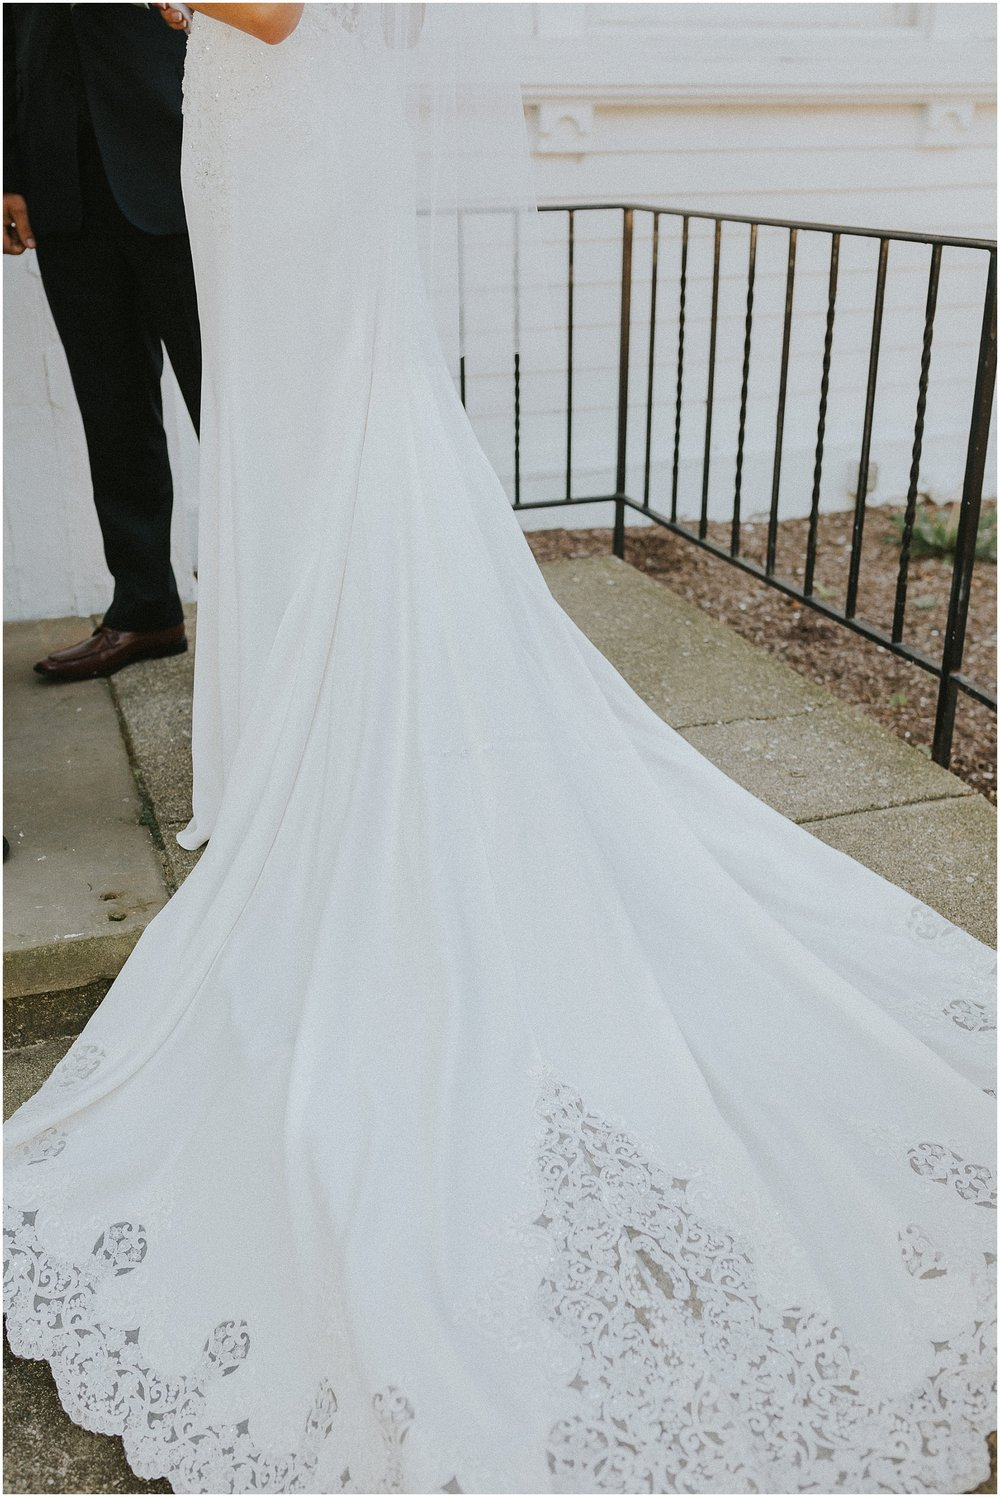 Fluffed out lace embellished wedding dress train